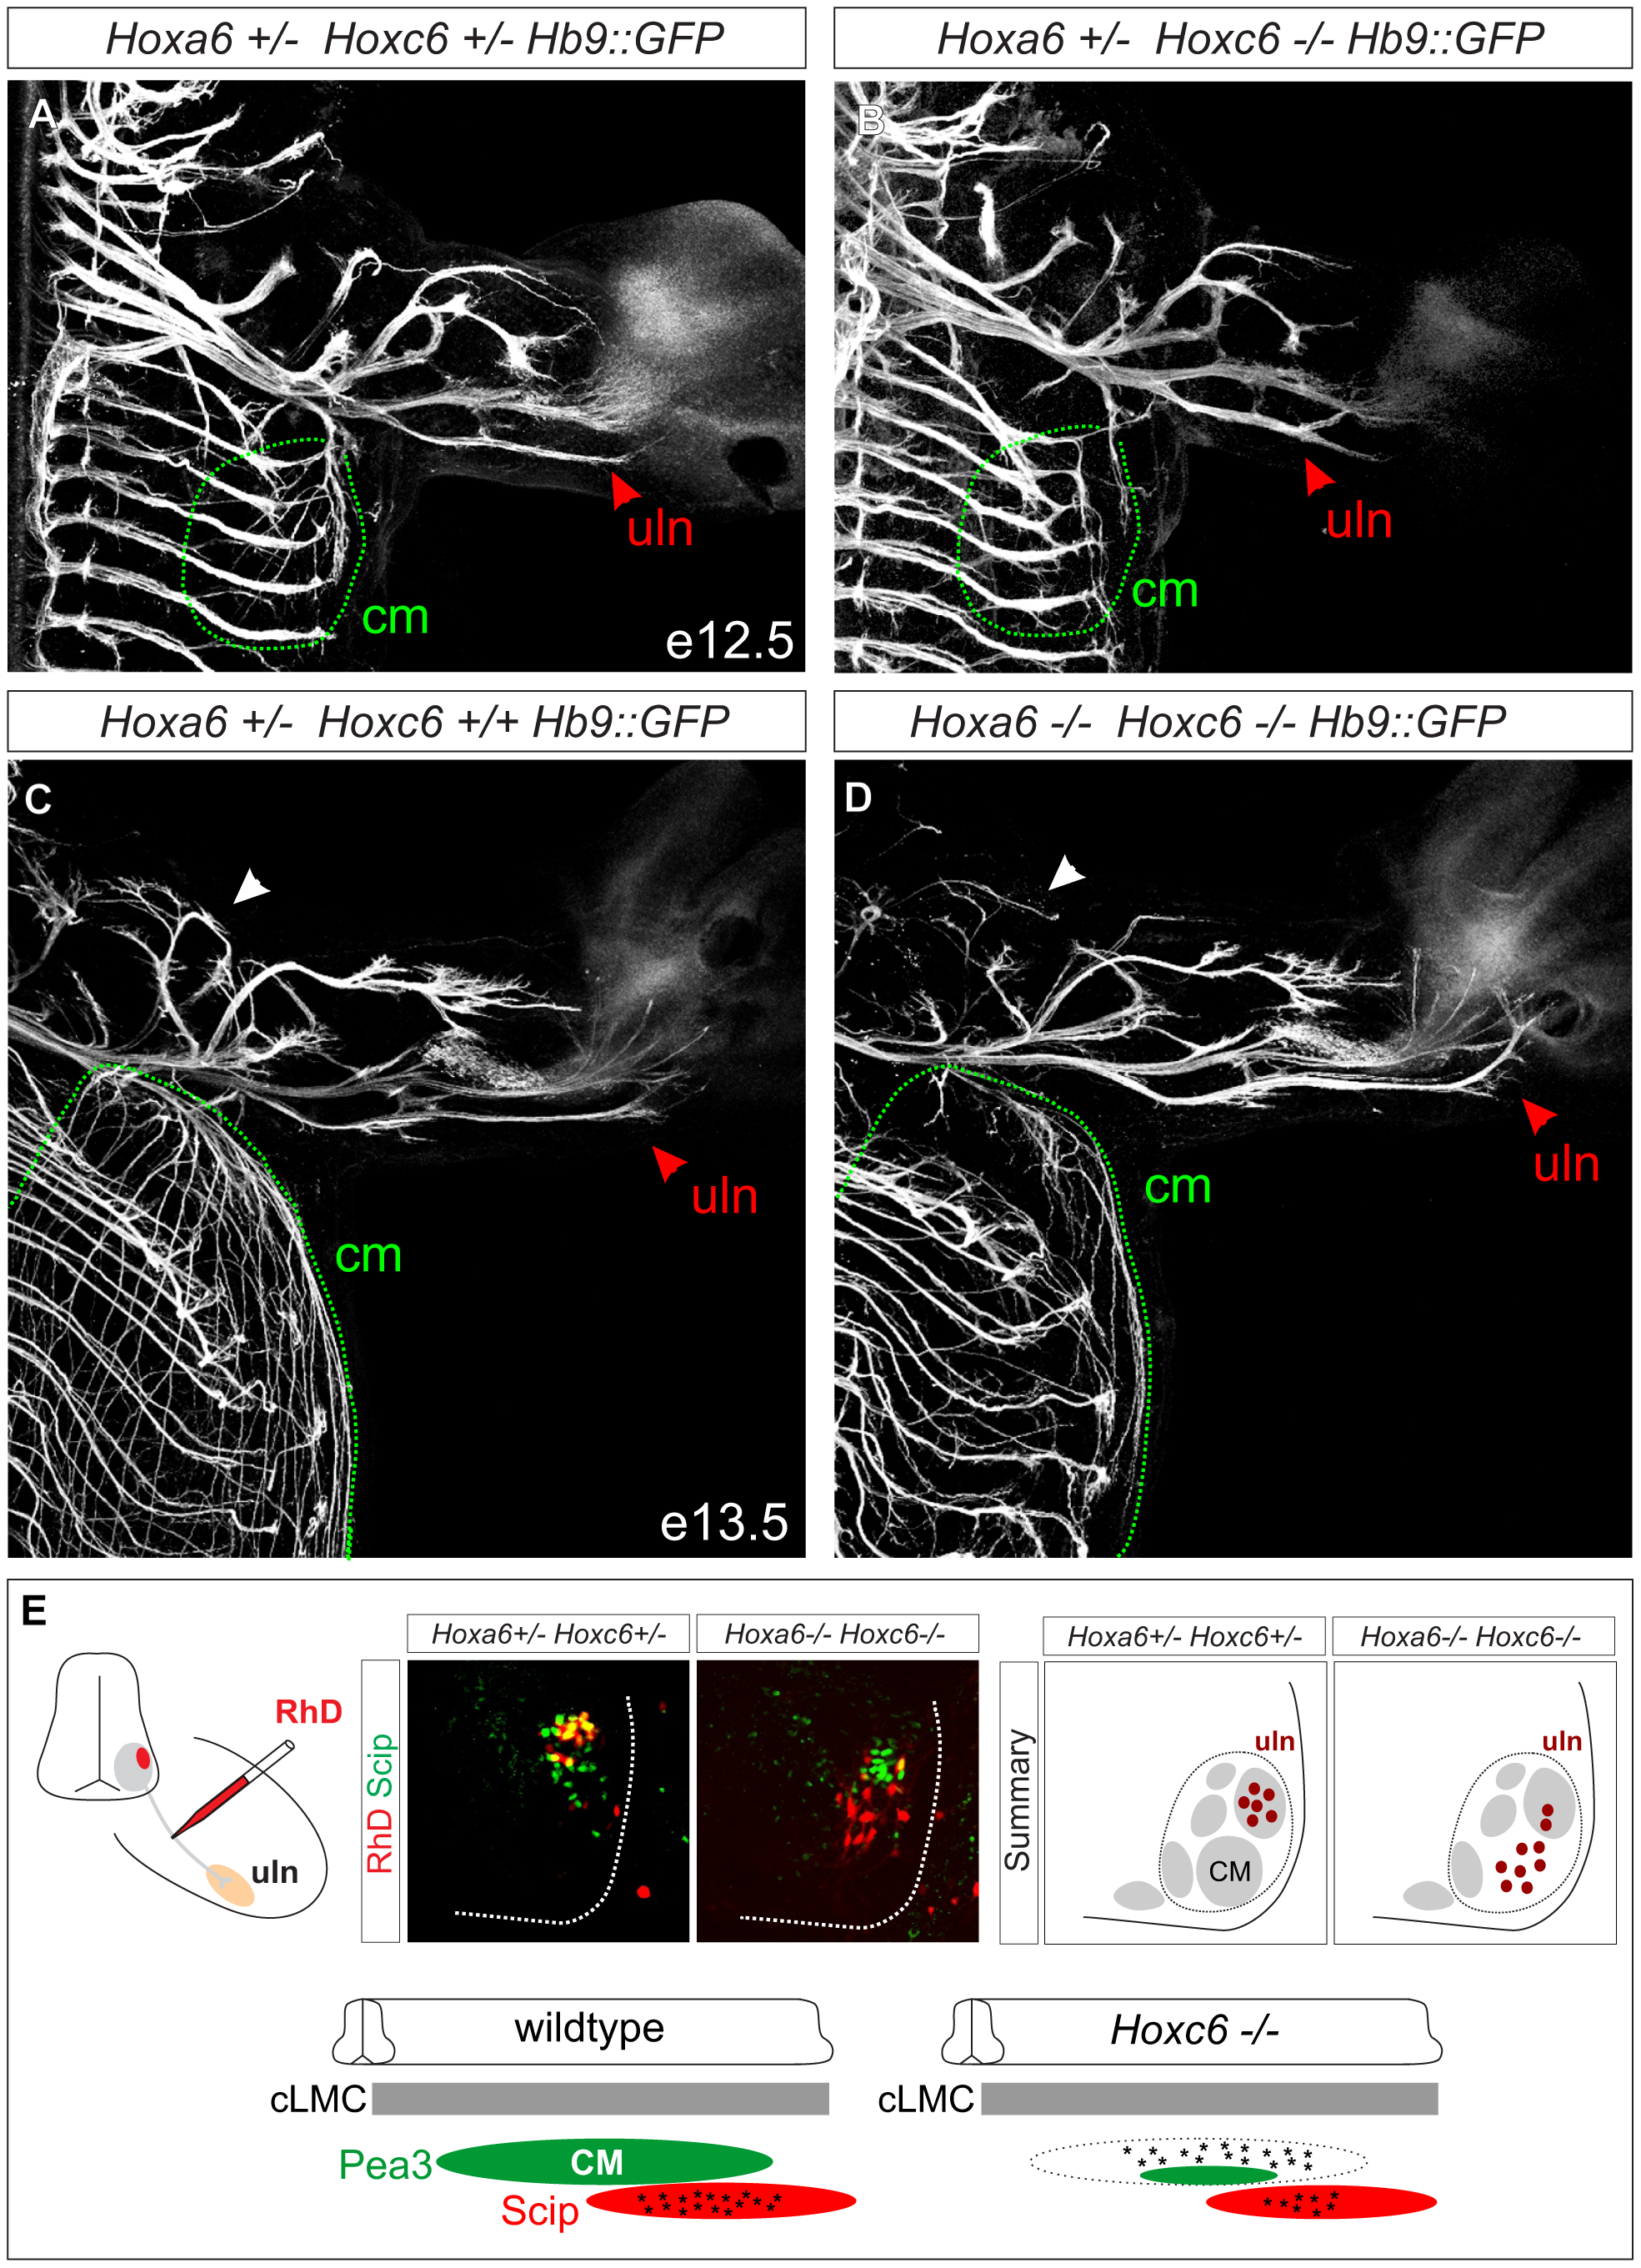 Limb innervation defects in <i>Hoxc6</i> mutants.